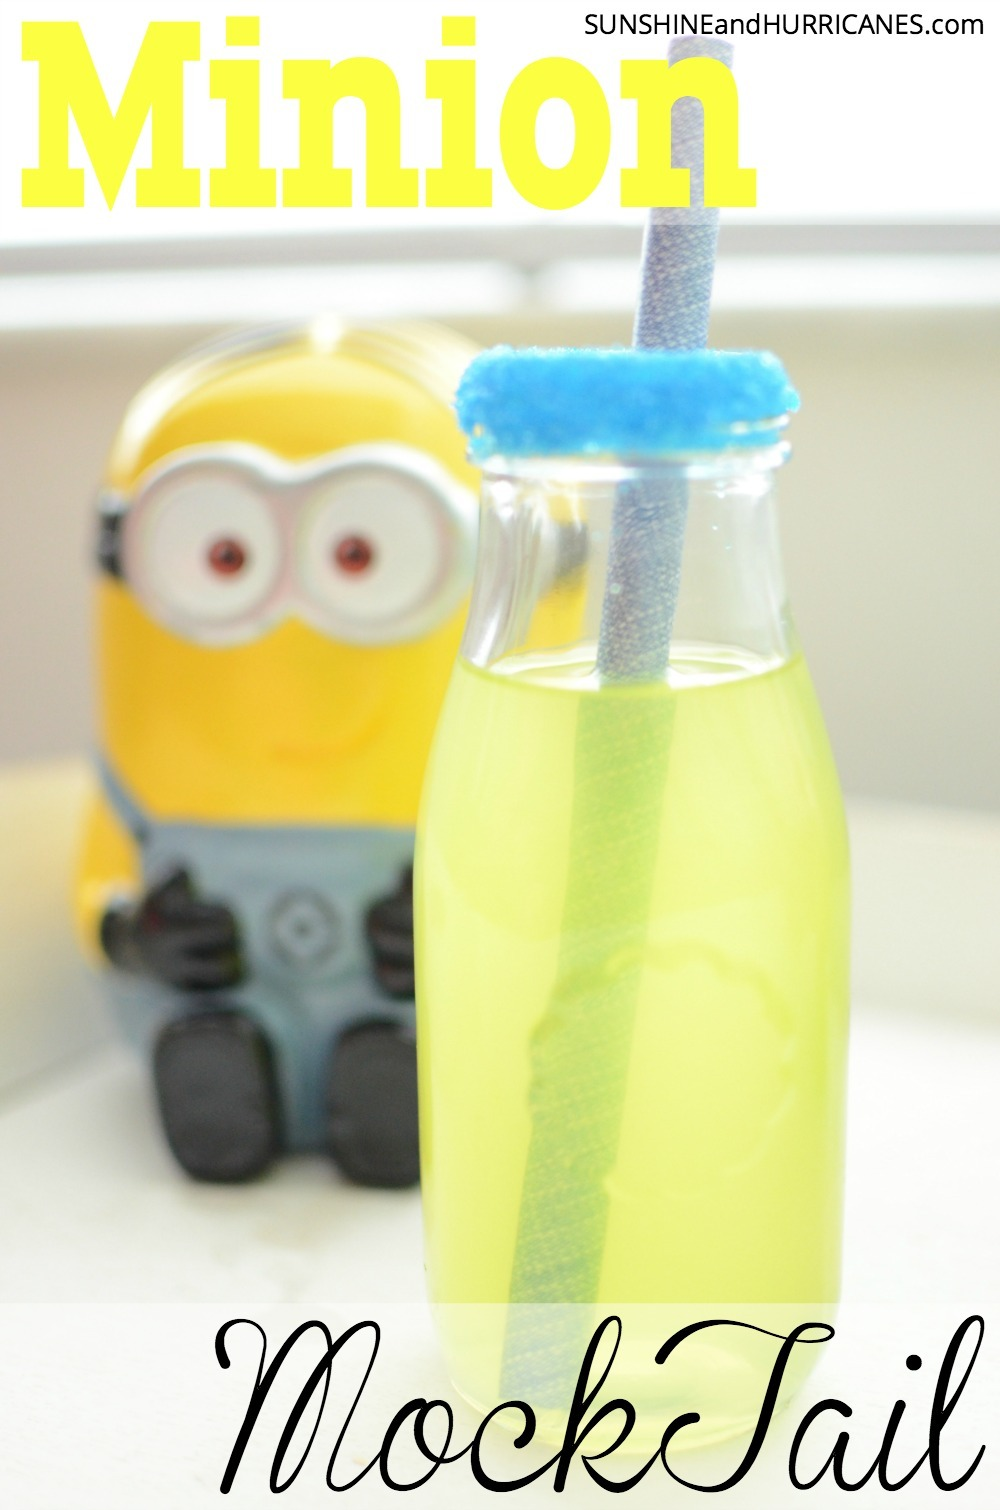 Looking for a cute and tasty drink to serve at a Despicable Me or Minion Birthday Party? What about just a fun beverage on a hot day? This Minion Mocktail is the perfect choice to add a little something sweet to any day. Minion Mocktail. SunshineandHurricanes.com